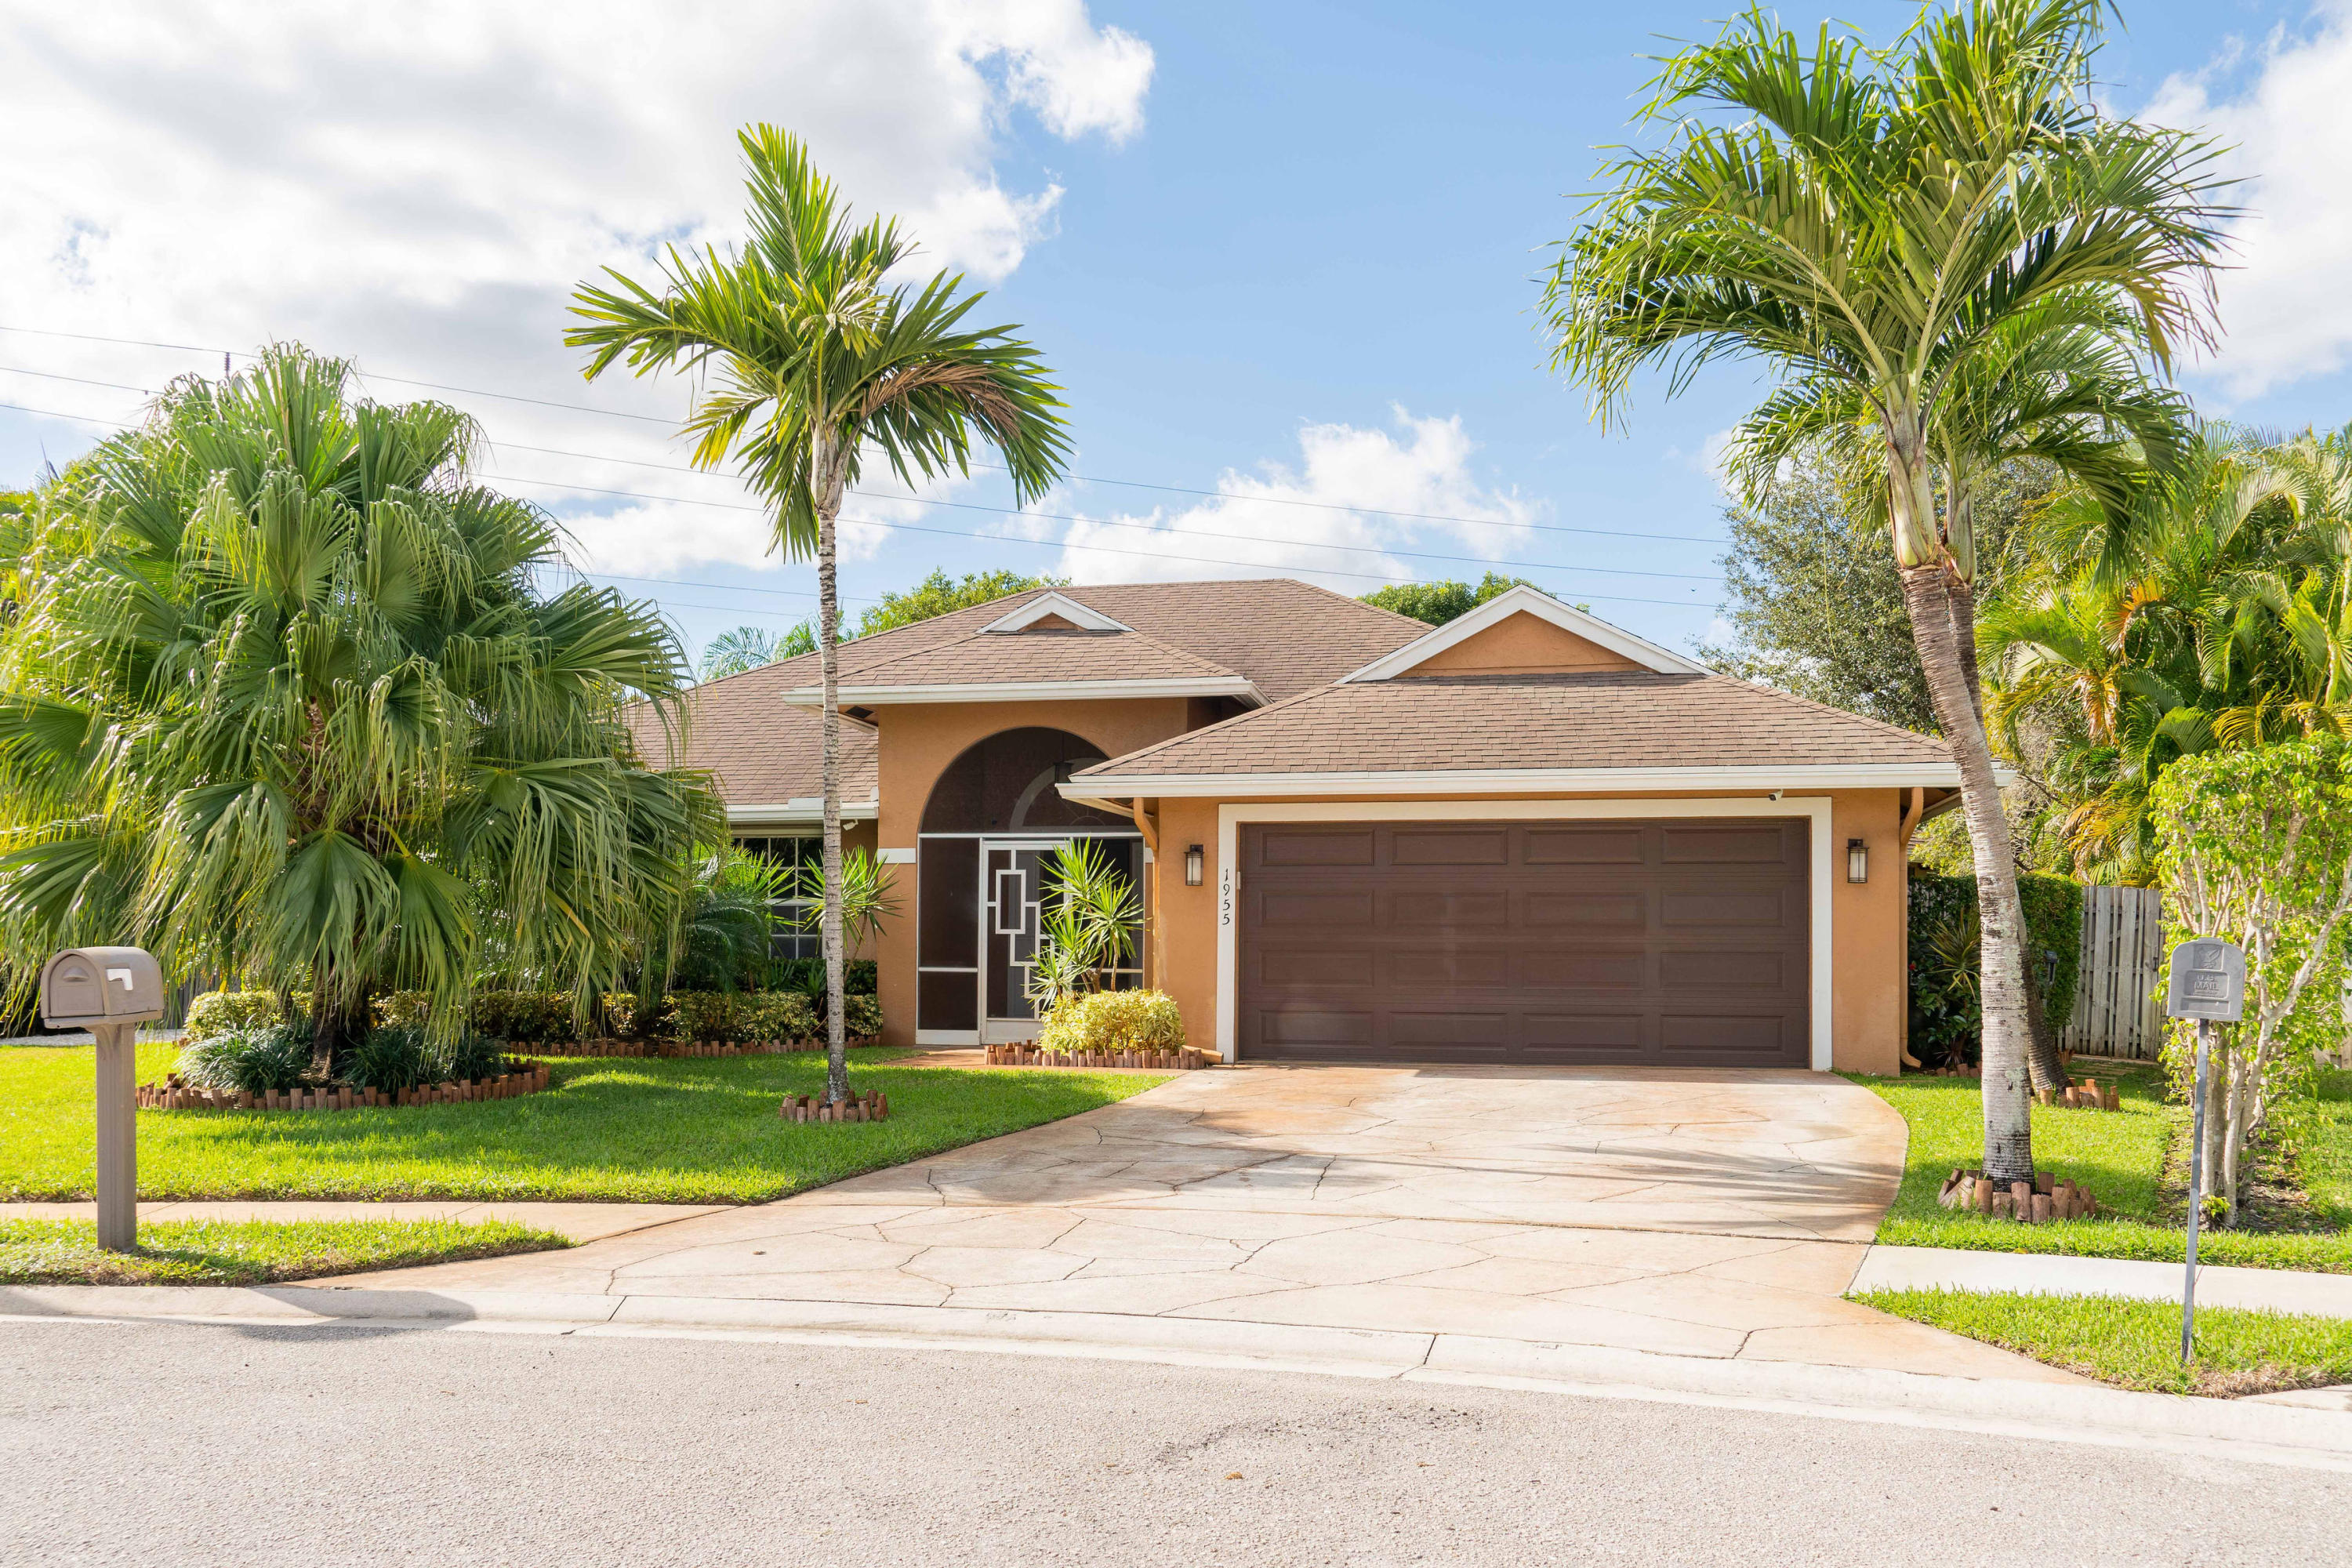 Home for sale in Chatsworth Village Wellington Florida